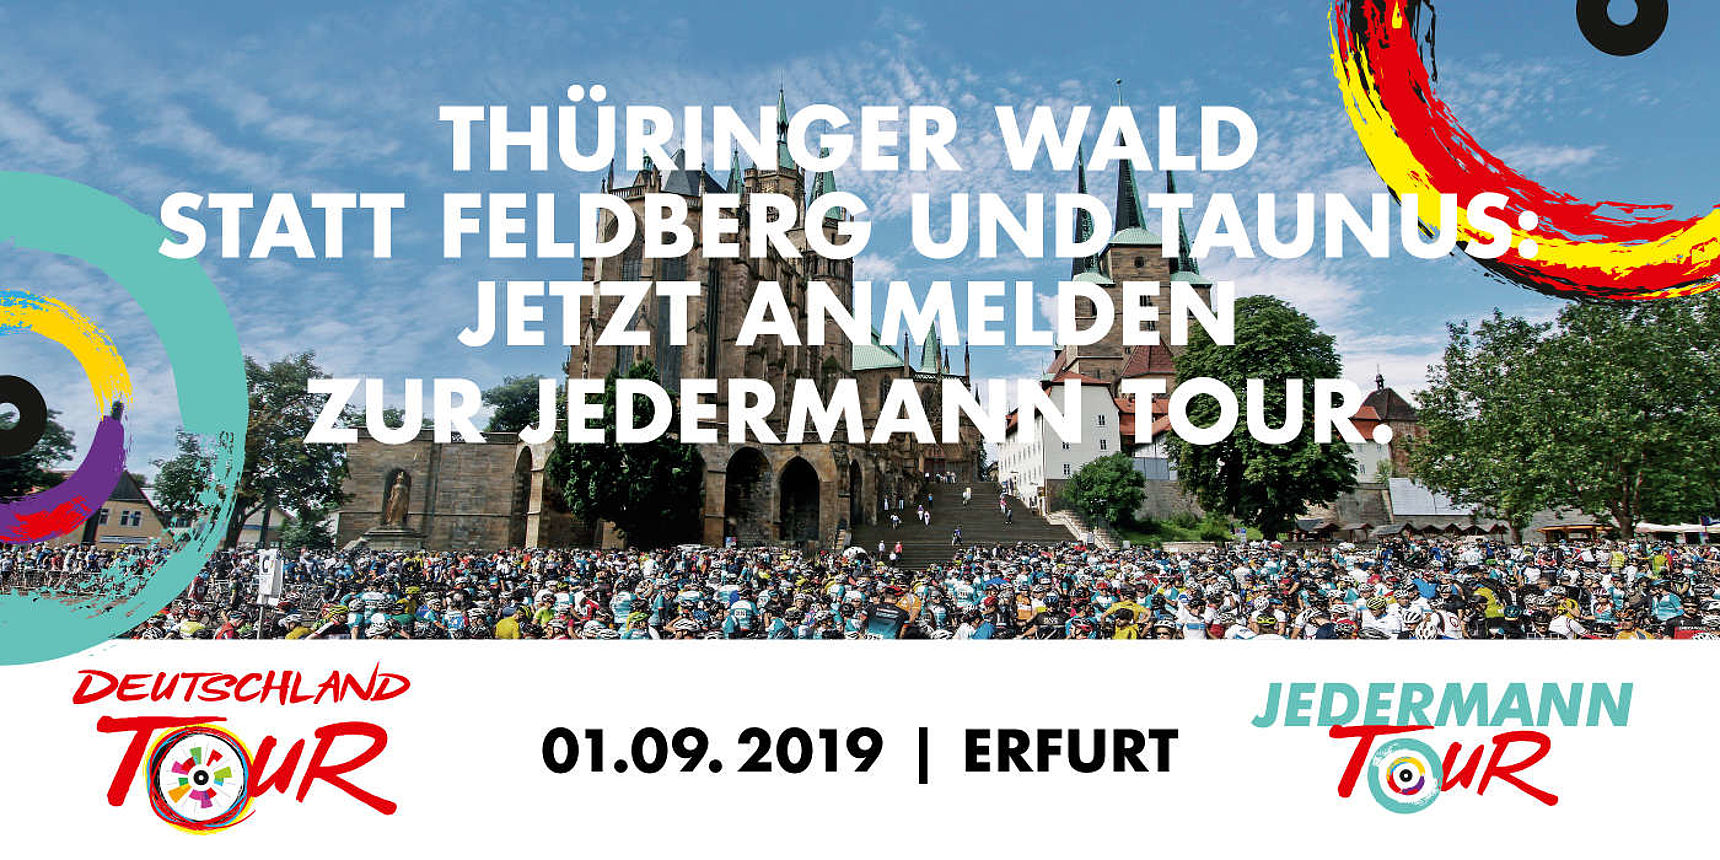 Jedermann Tour Banner